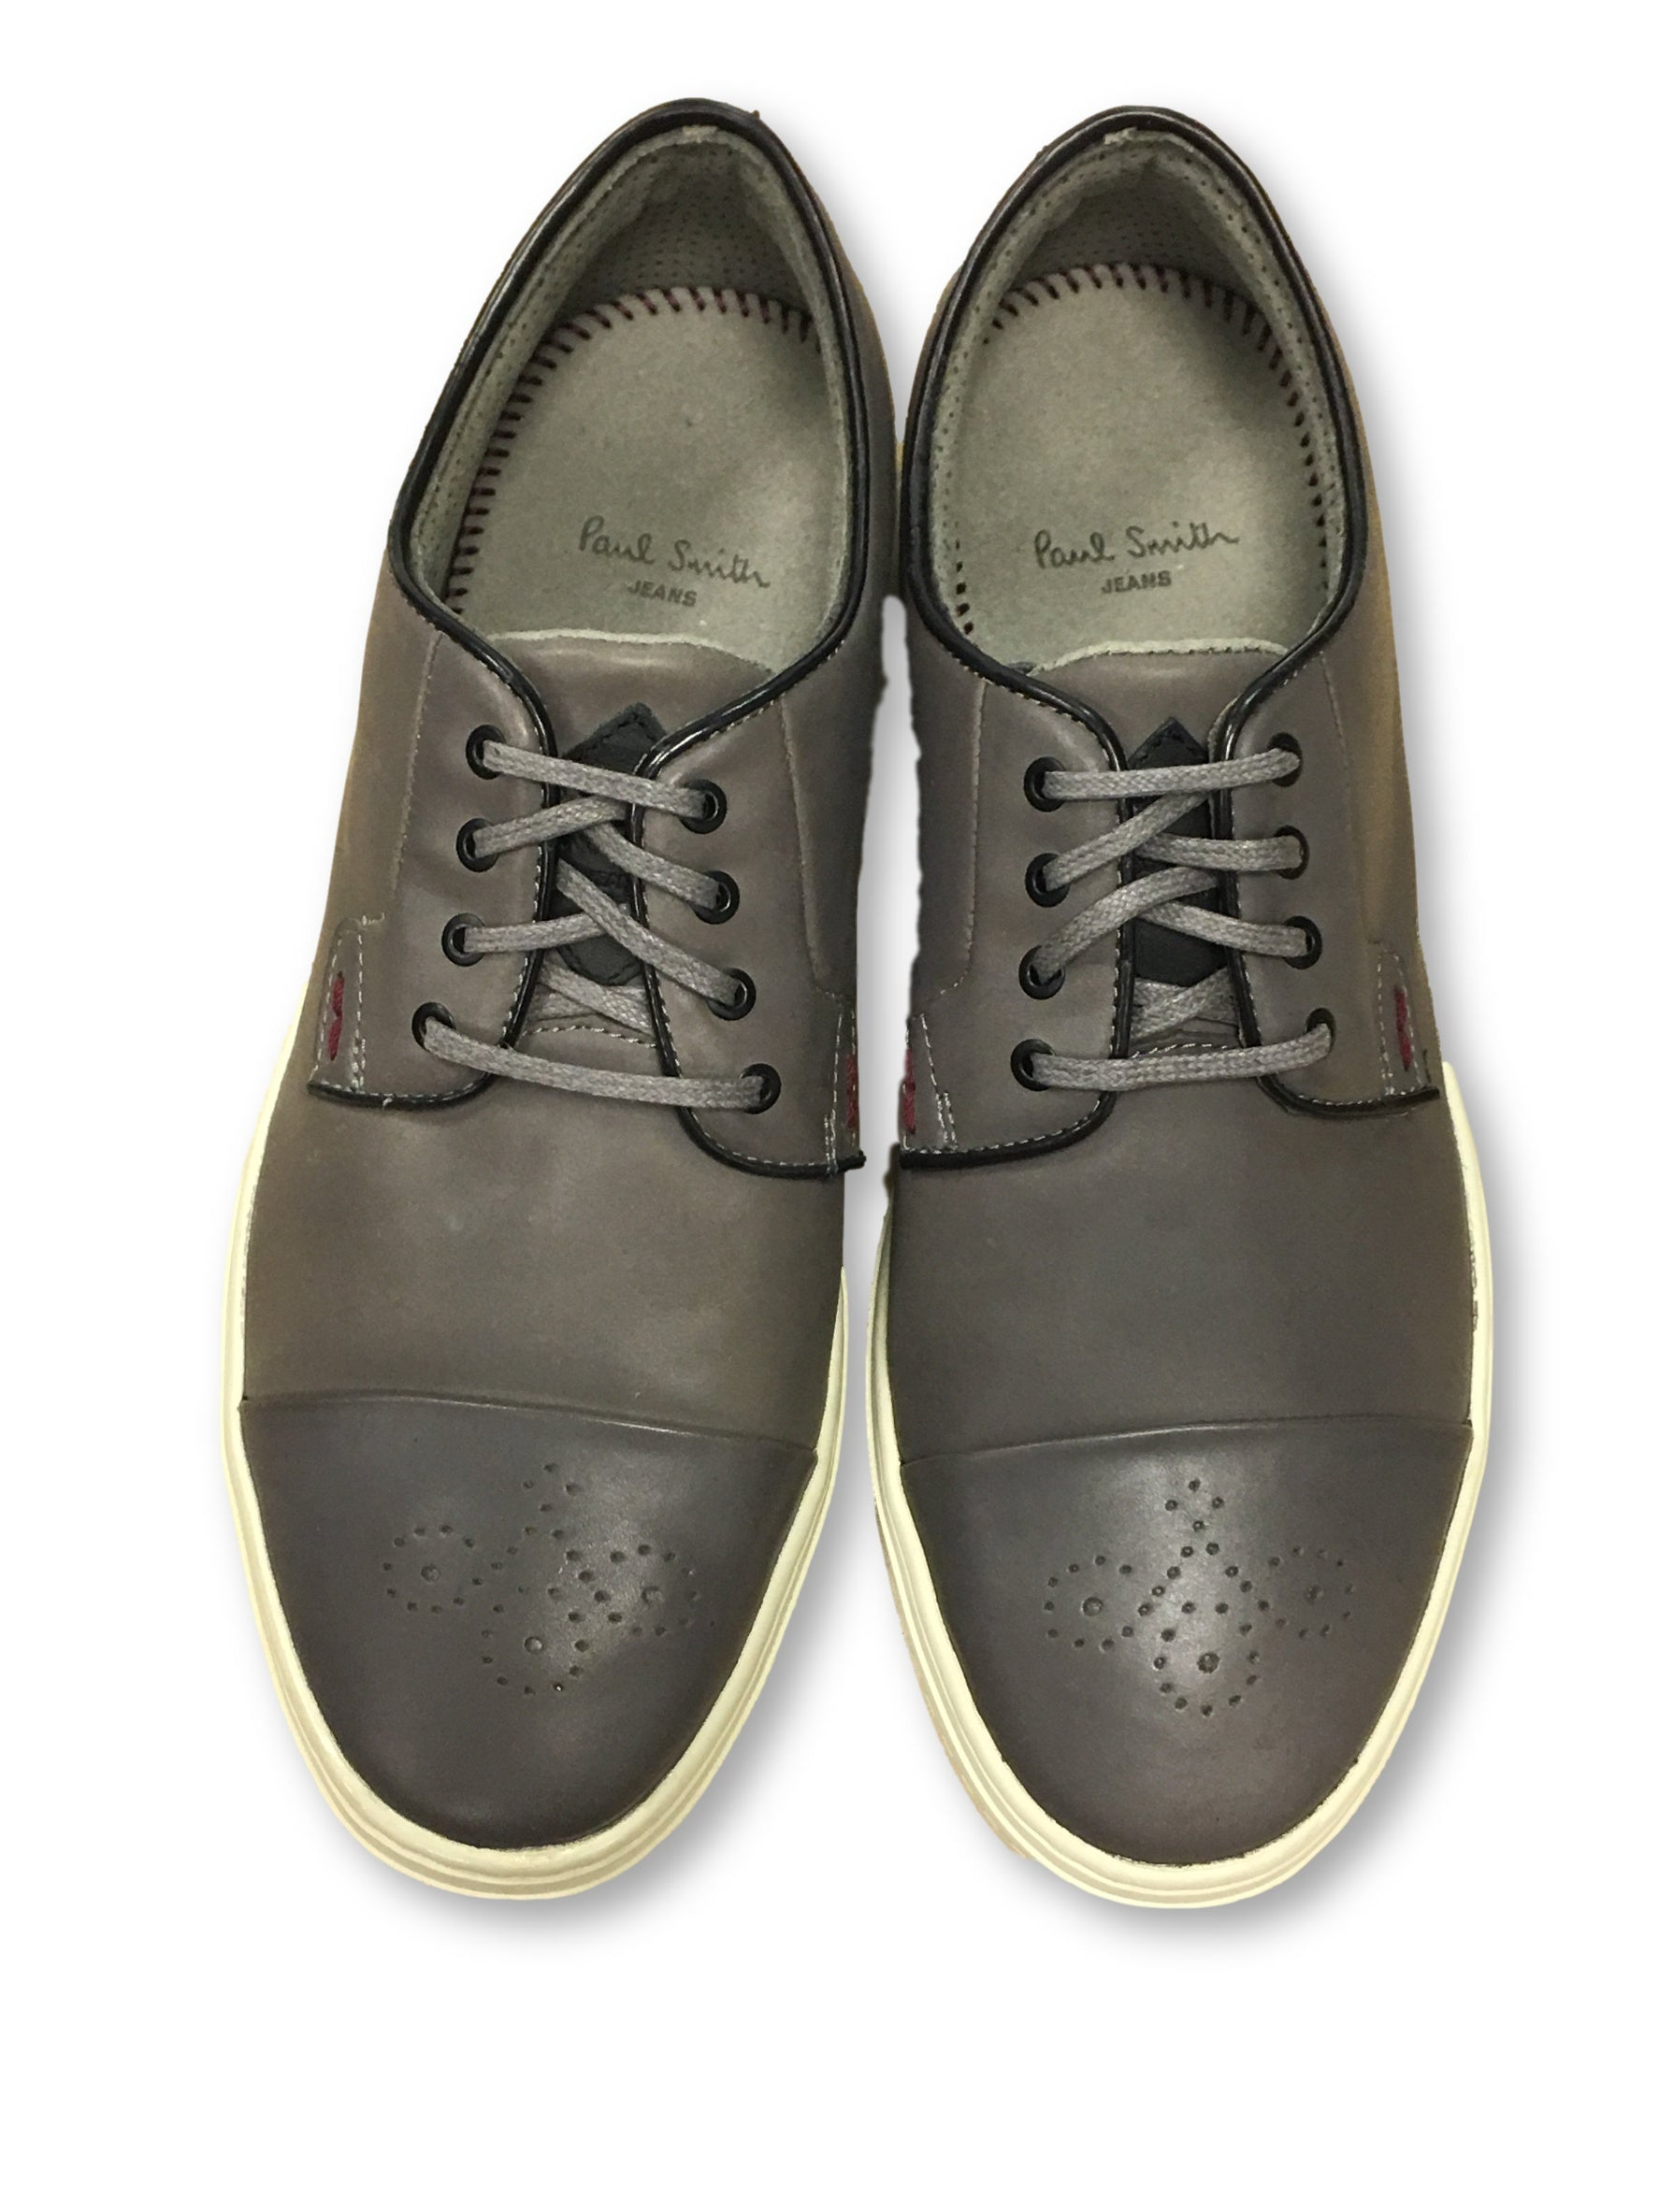 d3cc51d0ee7 Paul Smith Jeans Minster brogue tip sneakers in grey. Size Charts